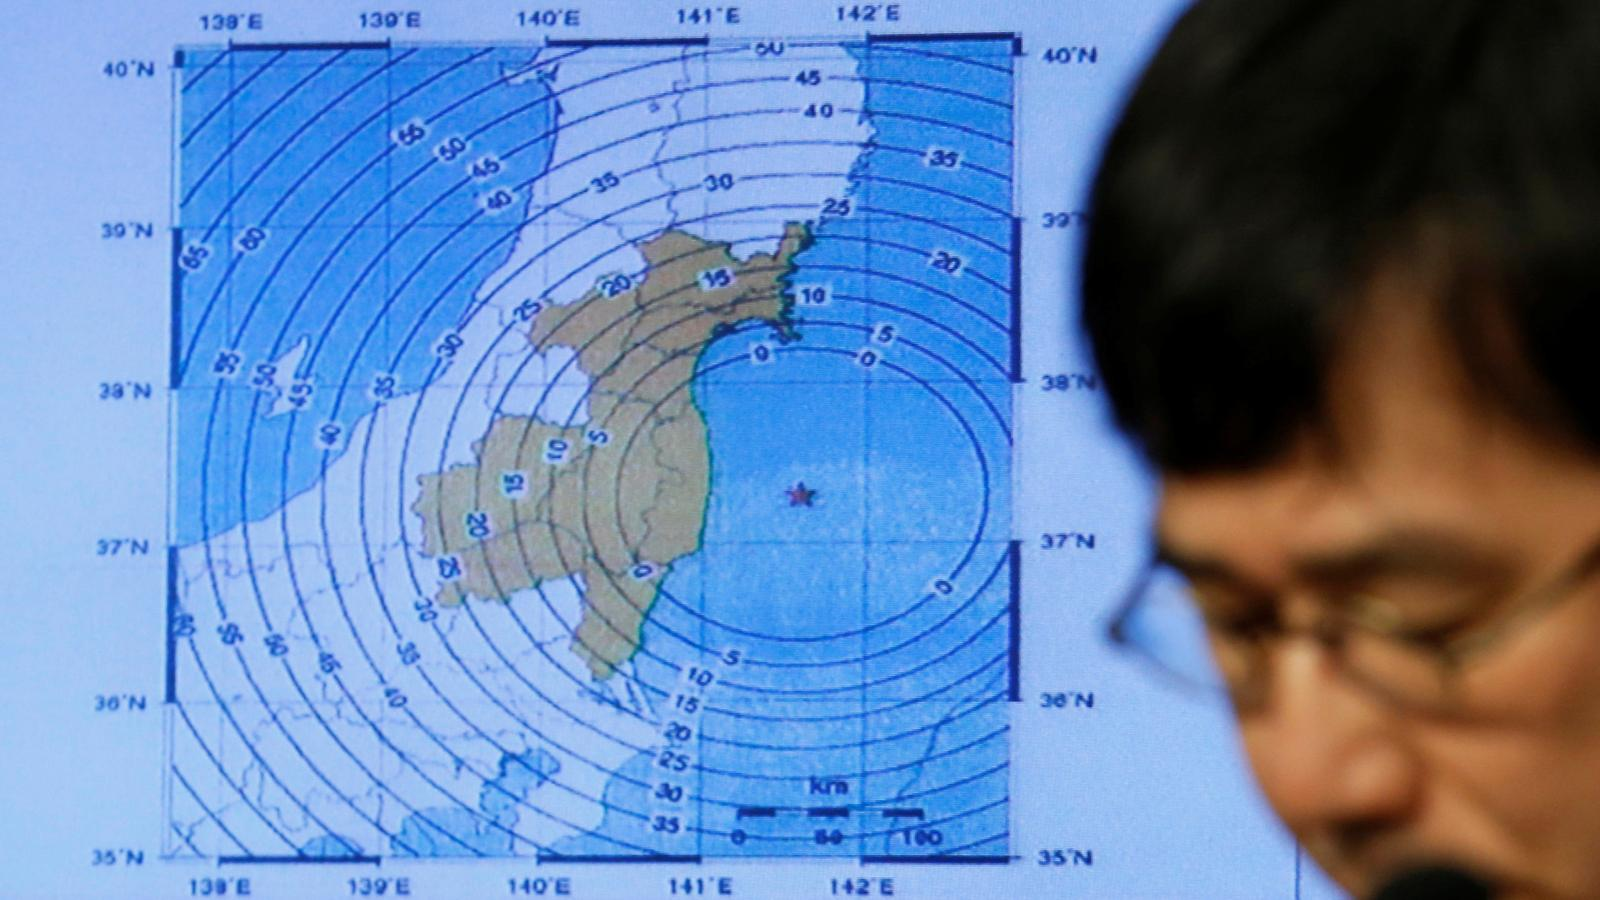 hight resolution of the latest earthquake in japan was an aftershock of the one five years ago